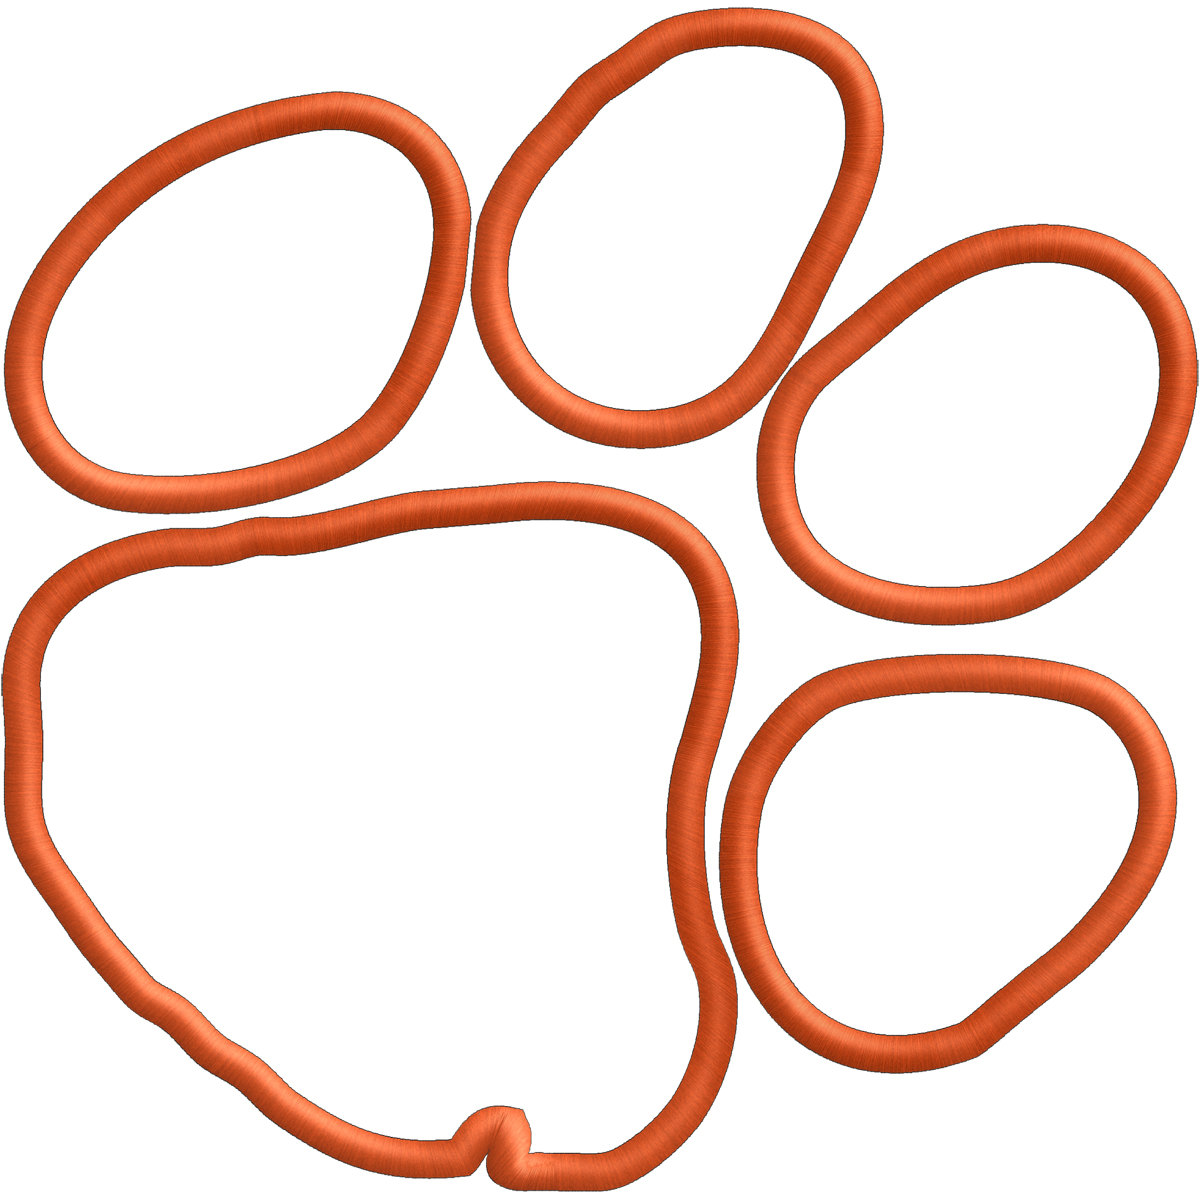 Tiger Paw Picture - ClipArt Best